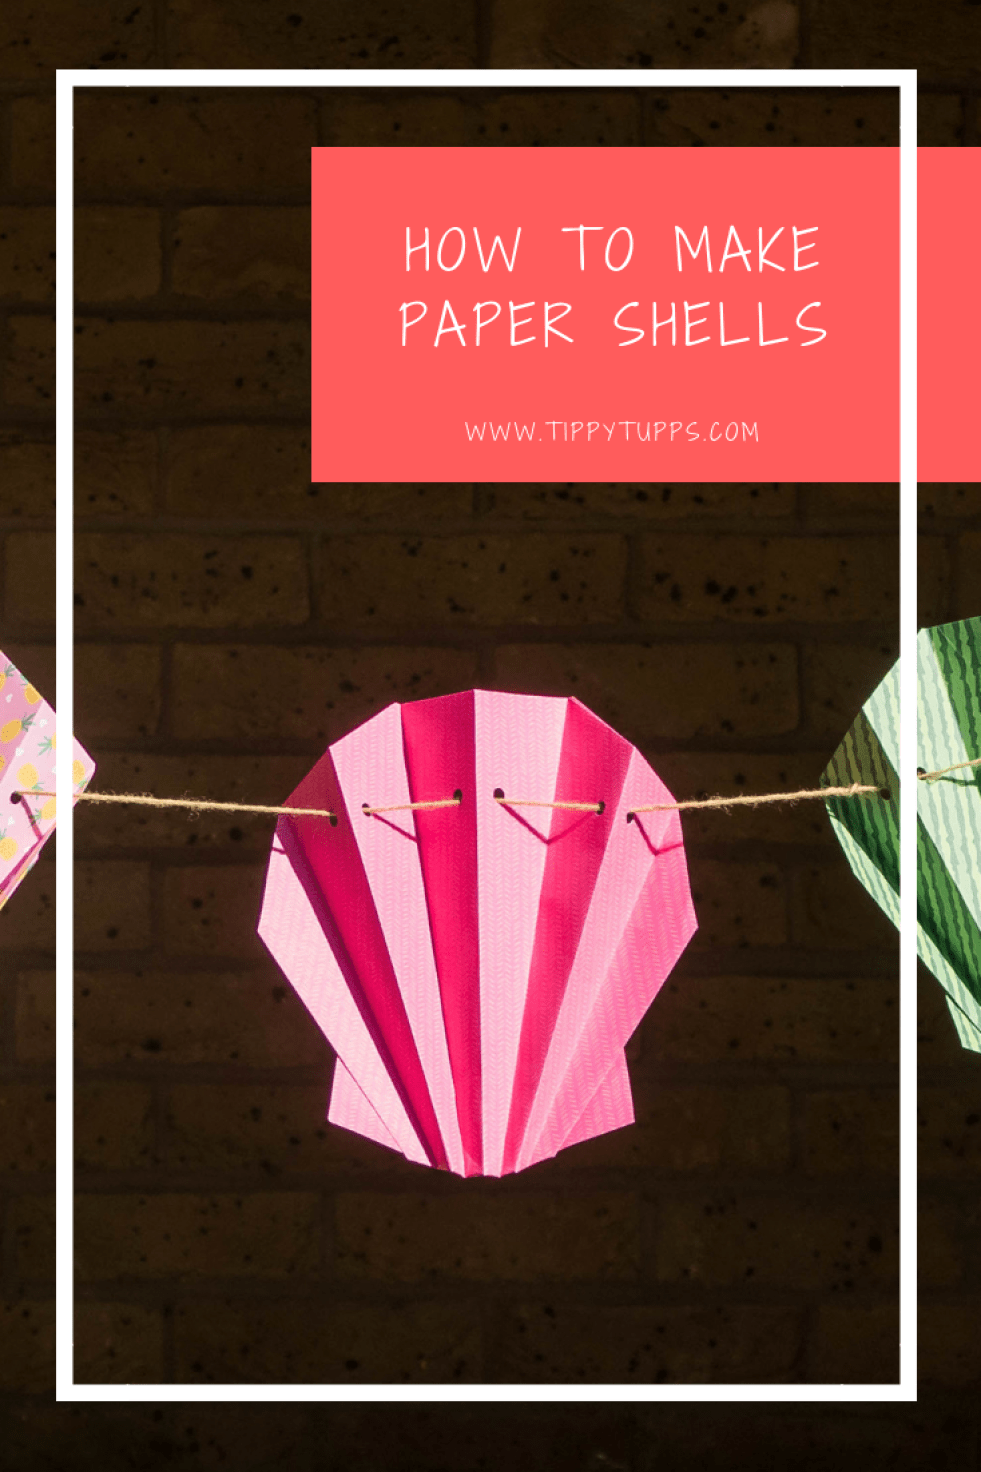 Really simple but effective paper shells, perfect for decorating a sea, mermaid or pirate themed children's birthday party